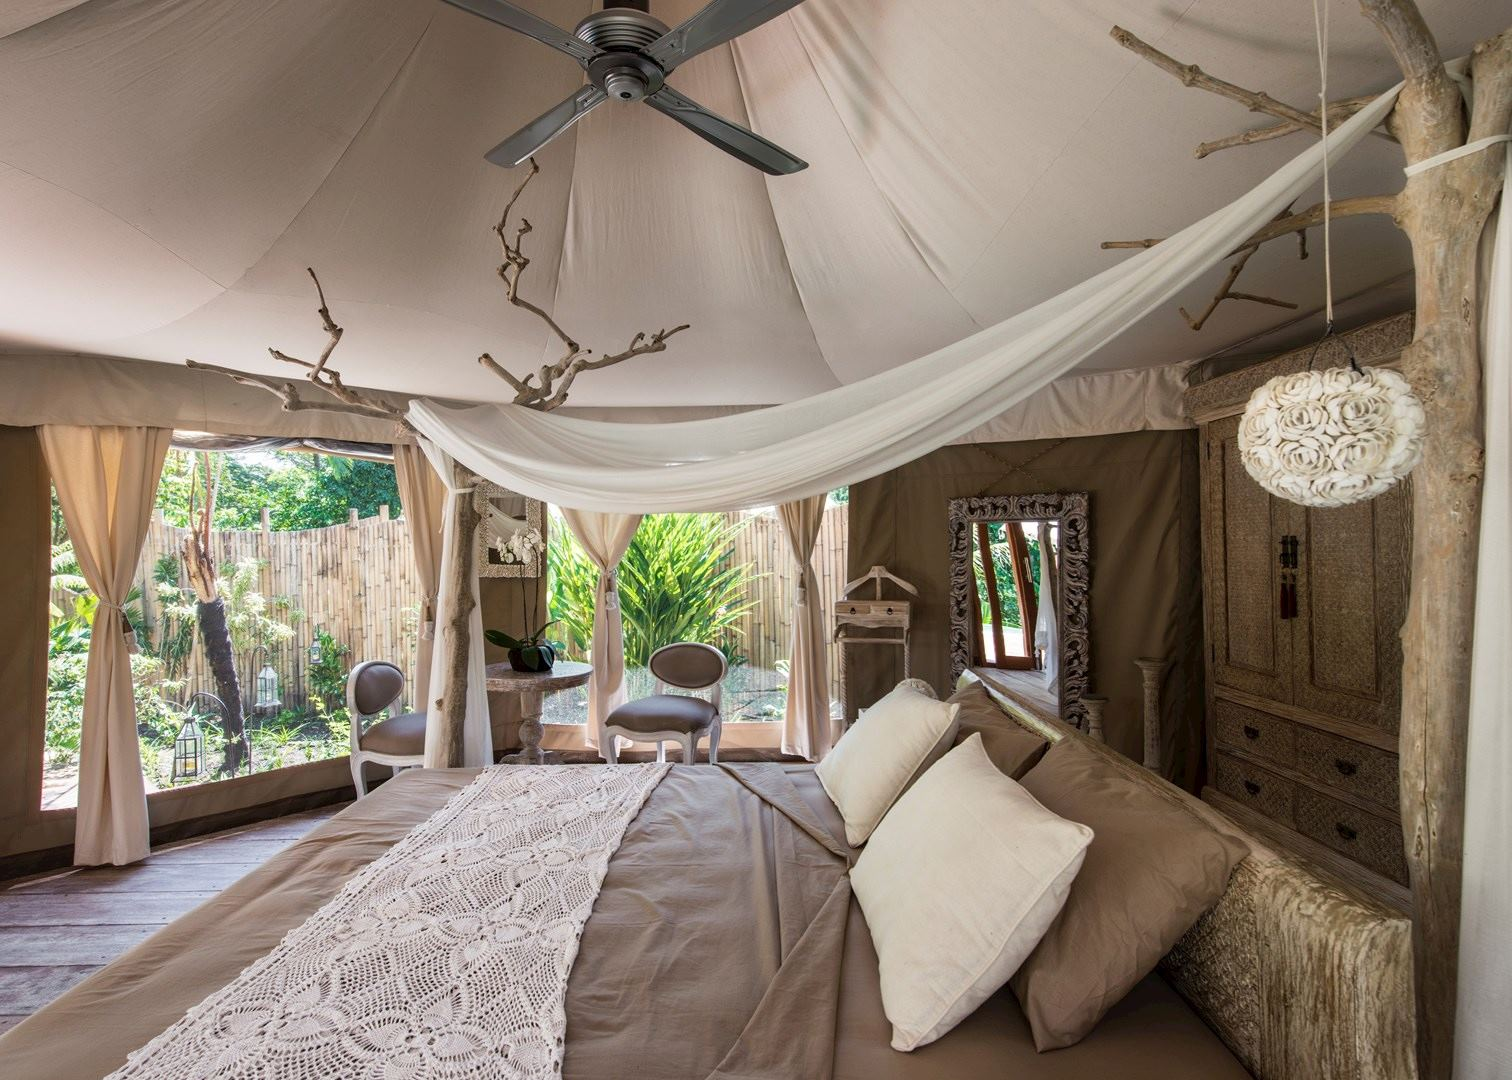 Sandat Glamping Tents Hotels In Ubud Audley Travel